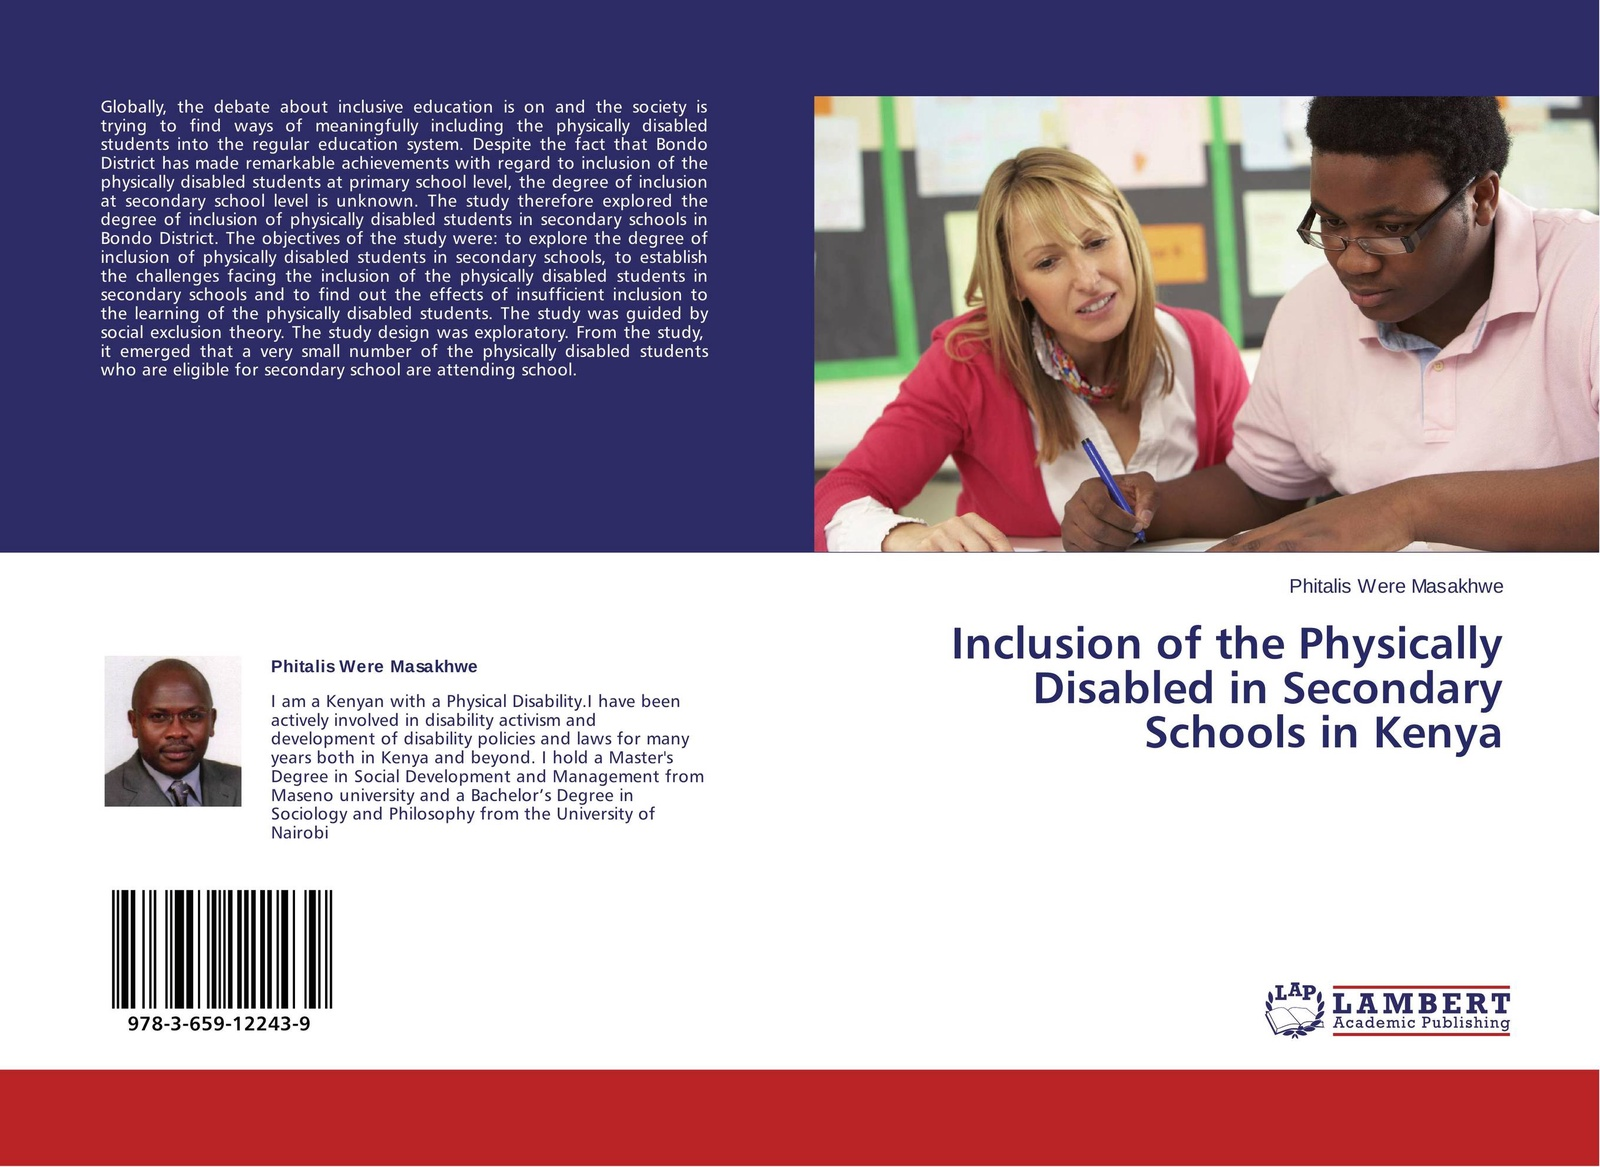 Phitalis Were Masakhwe Inclusion of the Physically Disabled in Secondary Schools in Kenya christopher blake oral esl test anxiety with emirati secondary school students